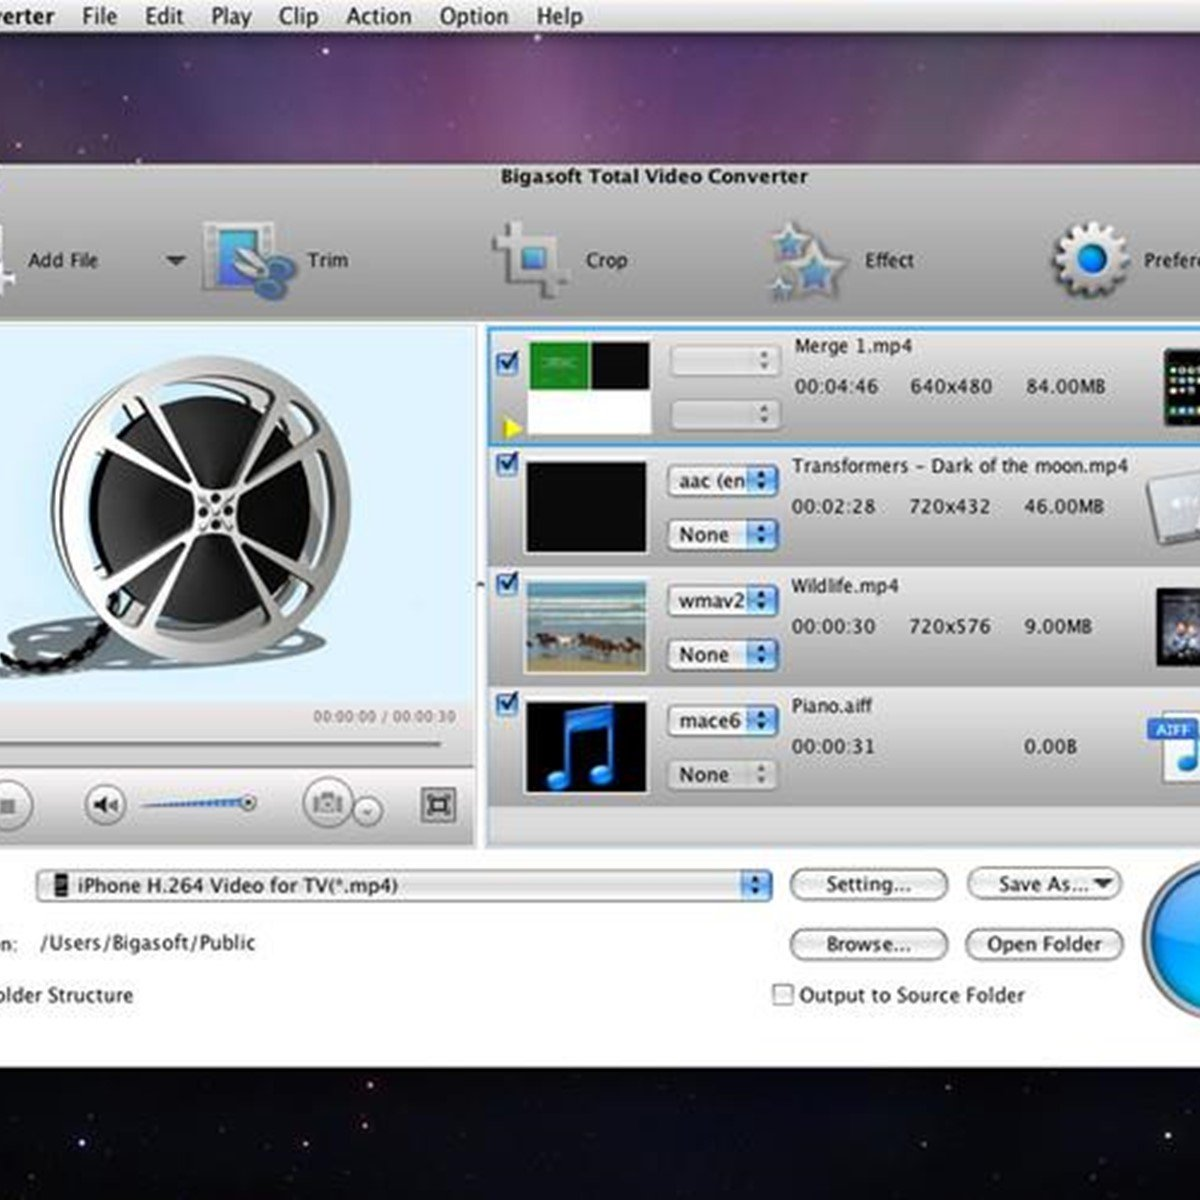 bigasoft total video converter free download full version with key